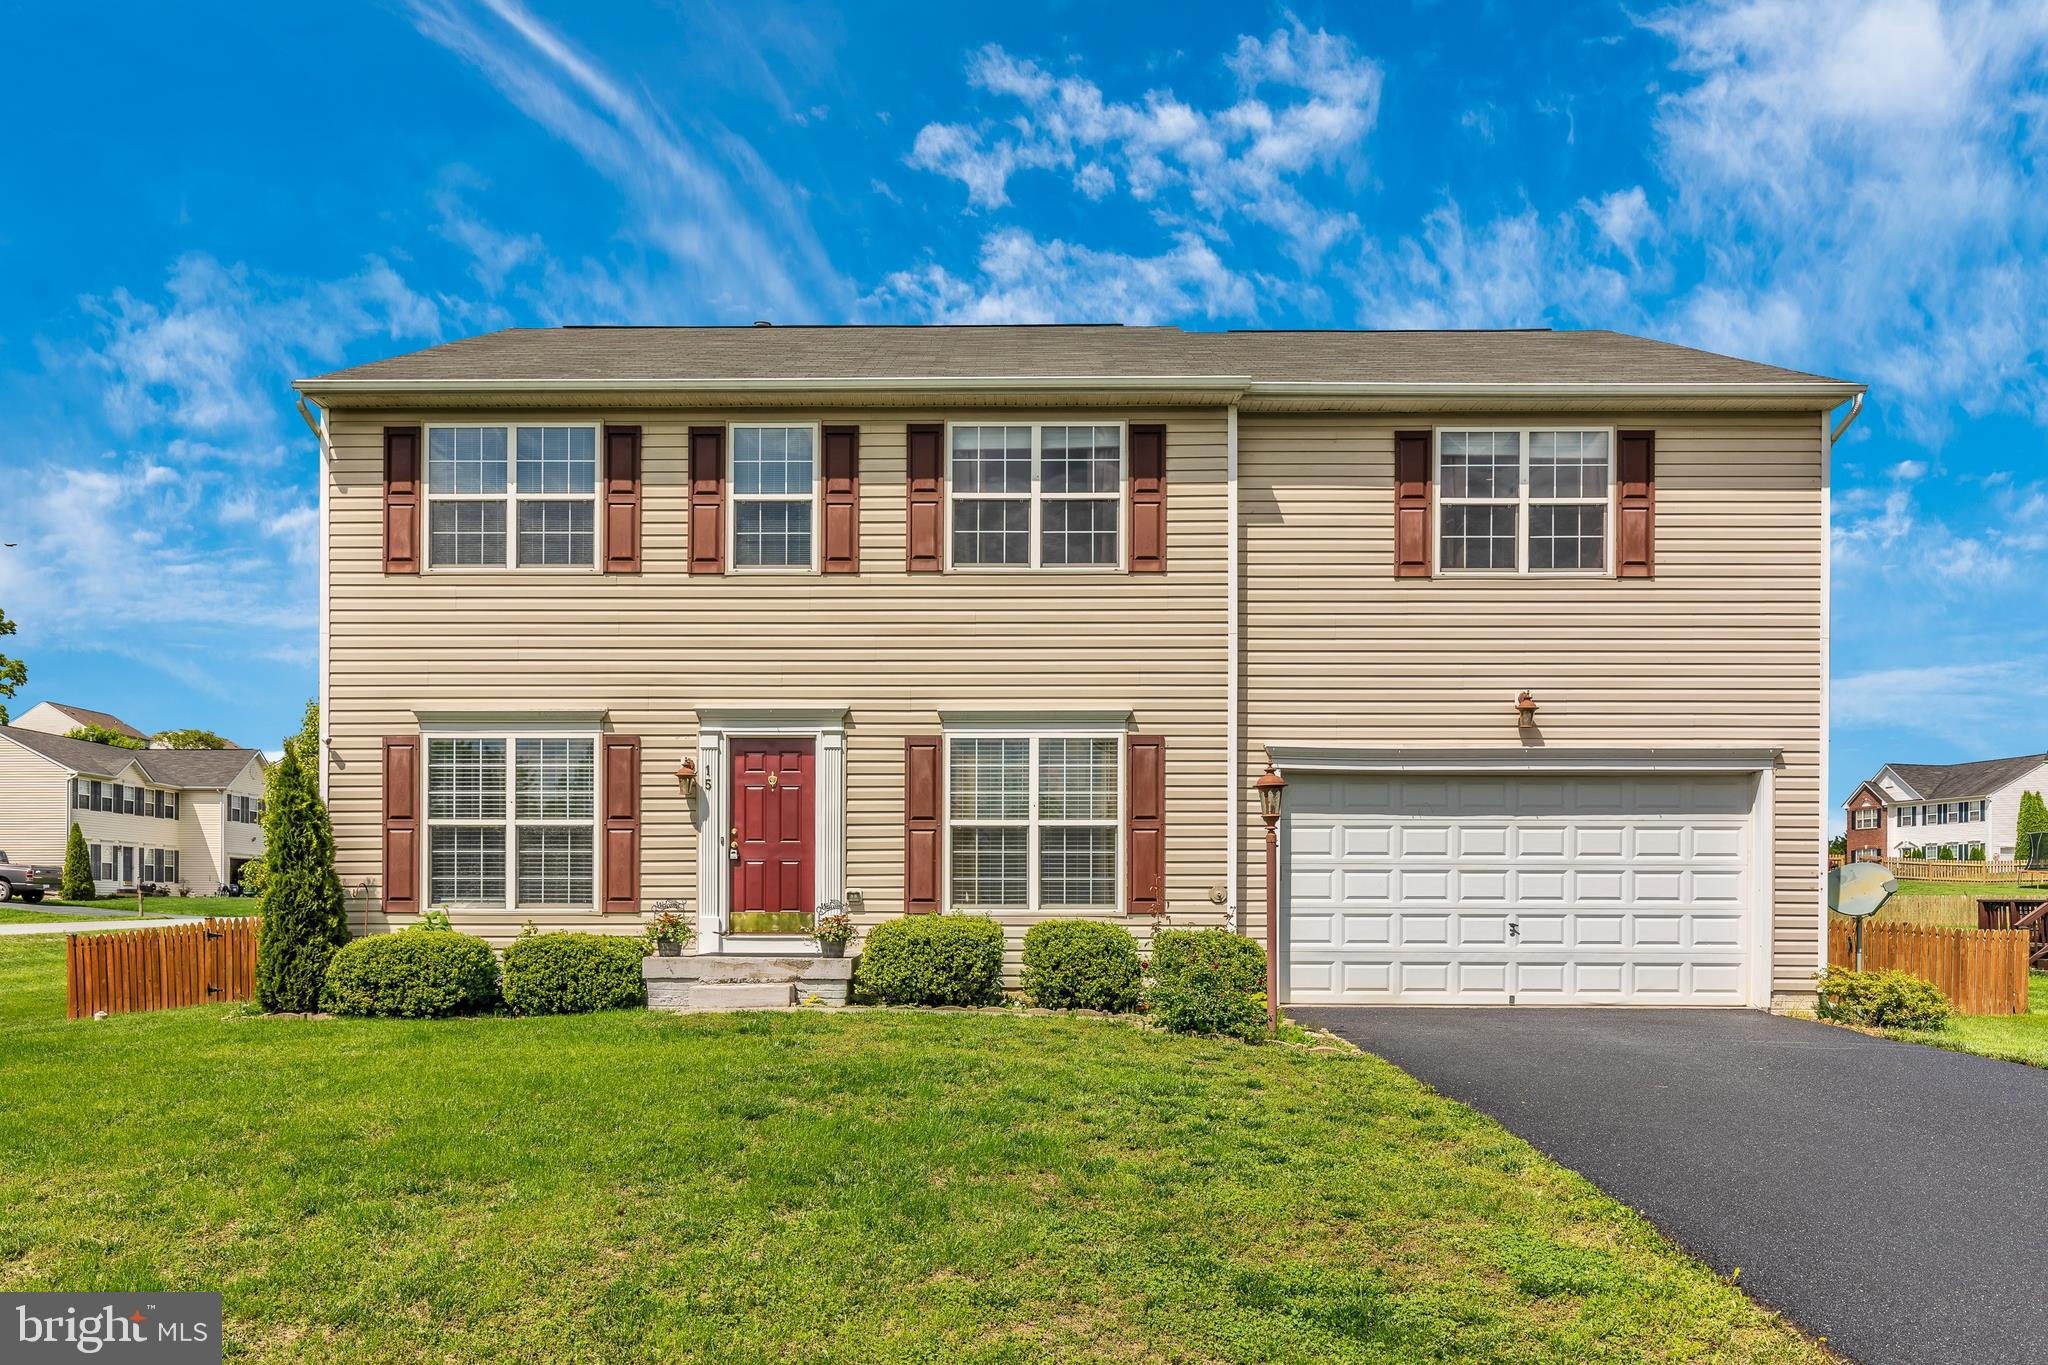 15 POWDER RIVER, HARPERS FERRY, WV 25425